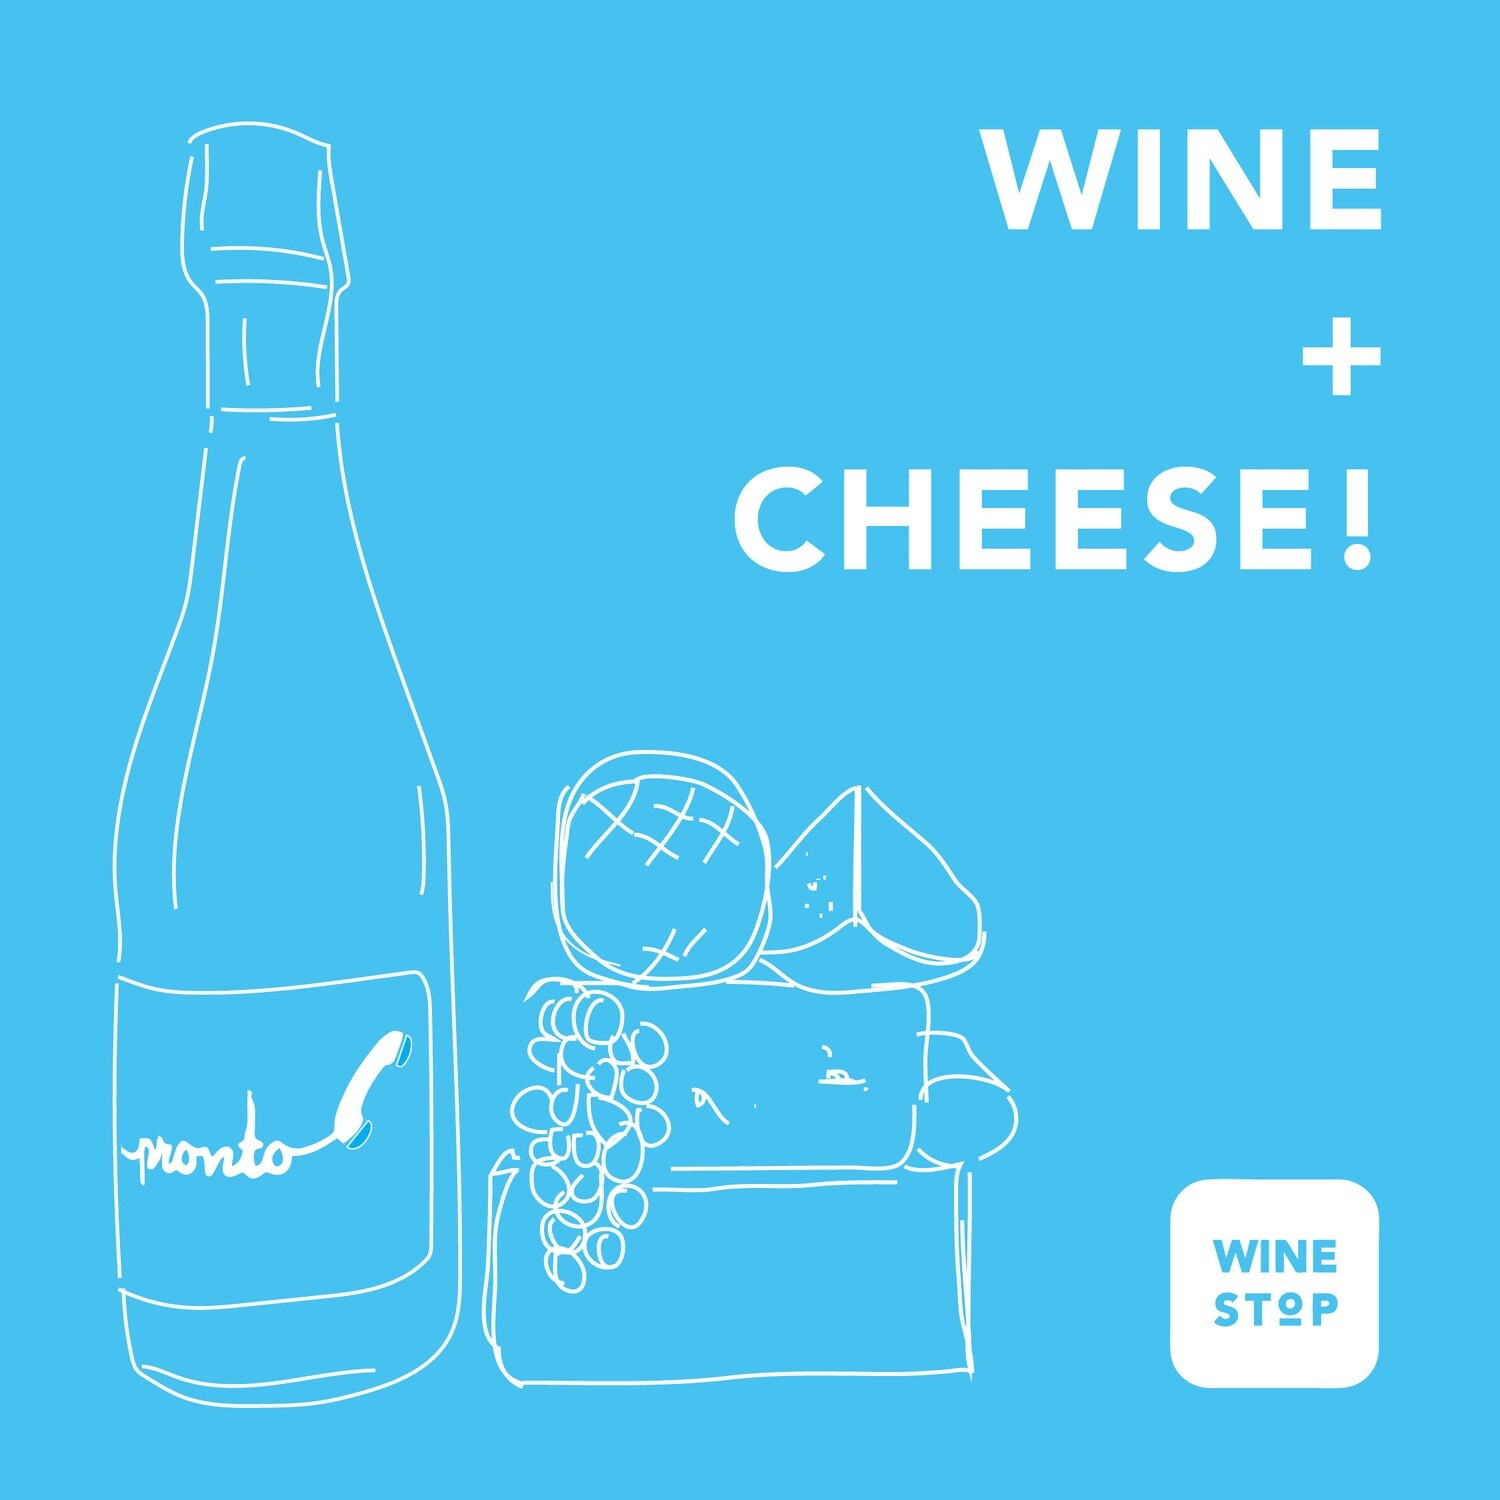 Every Thursday: 'Wine & Cheese'. Reservations For: Thursday, March 19th., 2020